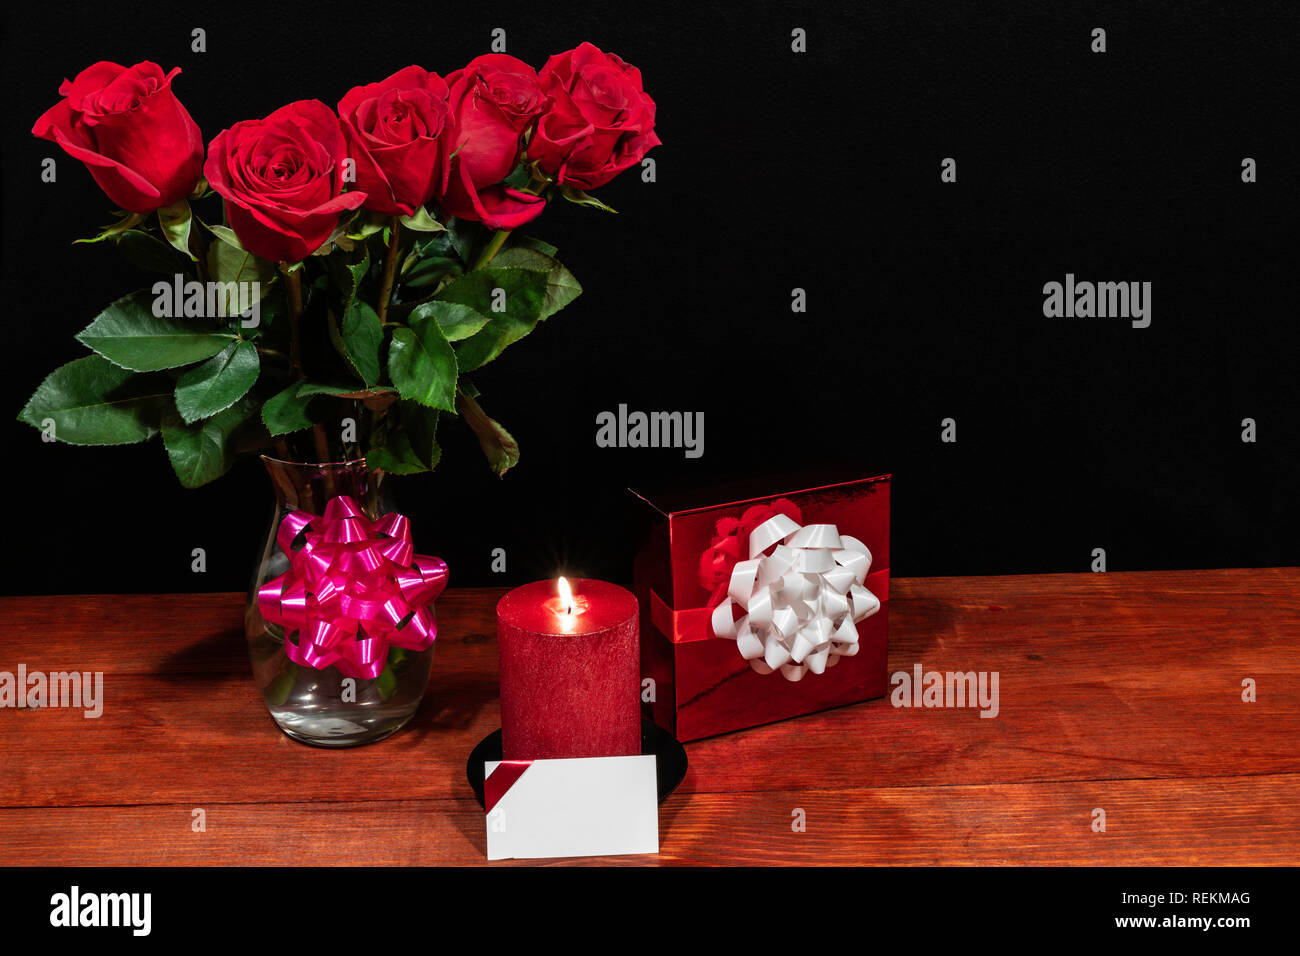 Beautiful red roses in vase with pink bow wrapped present and red candle with name tag on wooden table on dark background. Valentines, Mothers Day, Ea Stock Photo